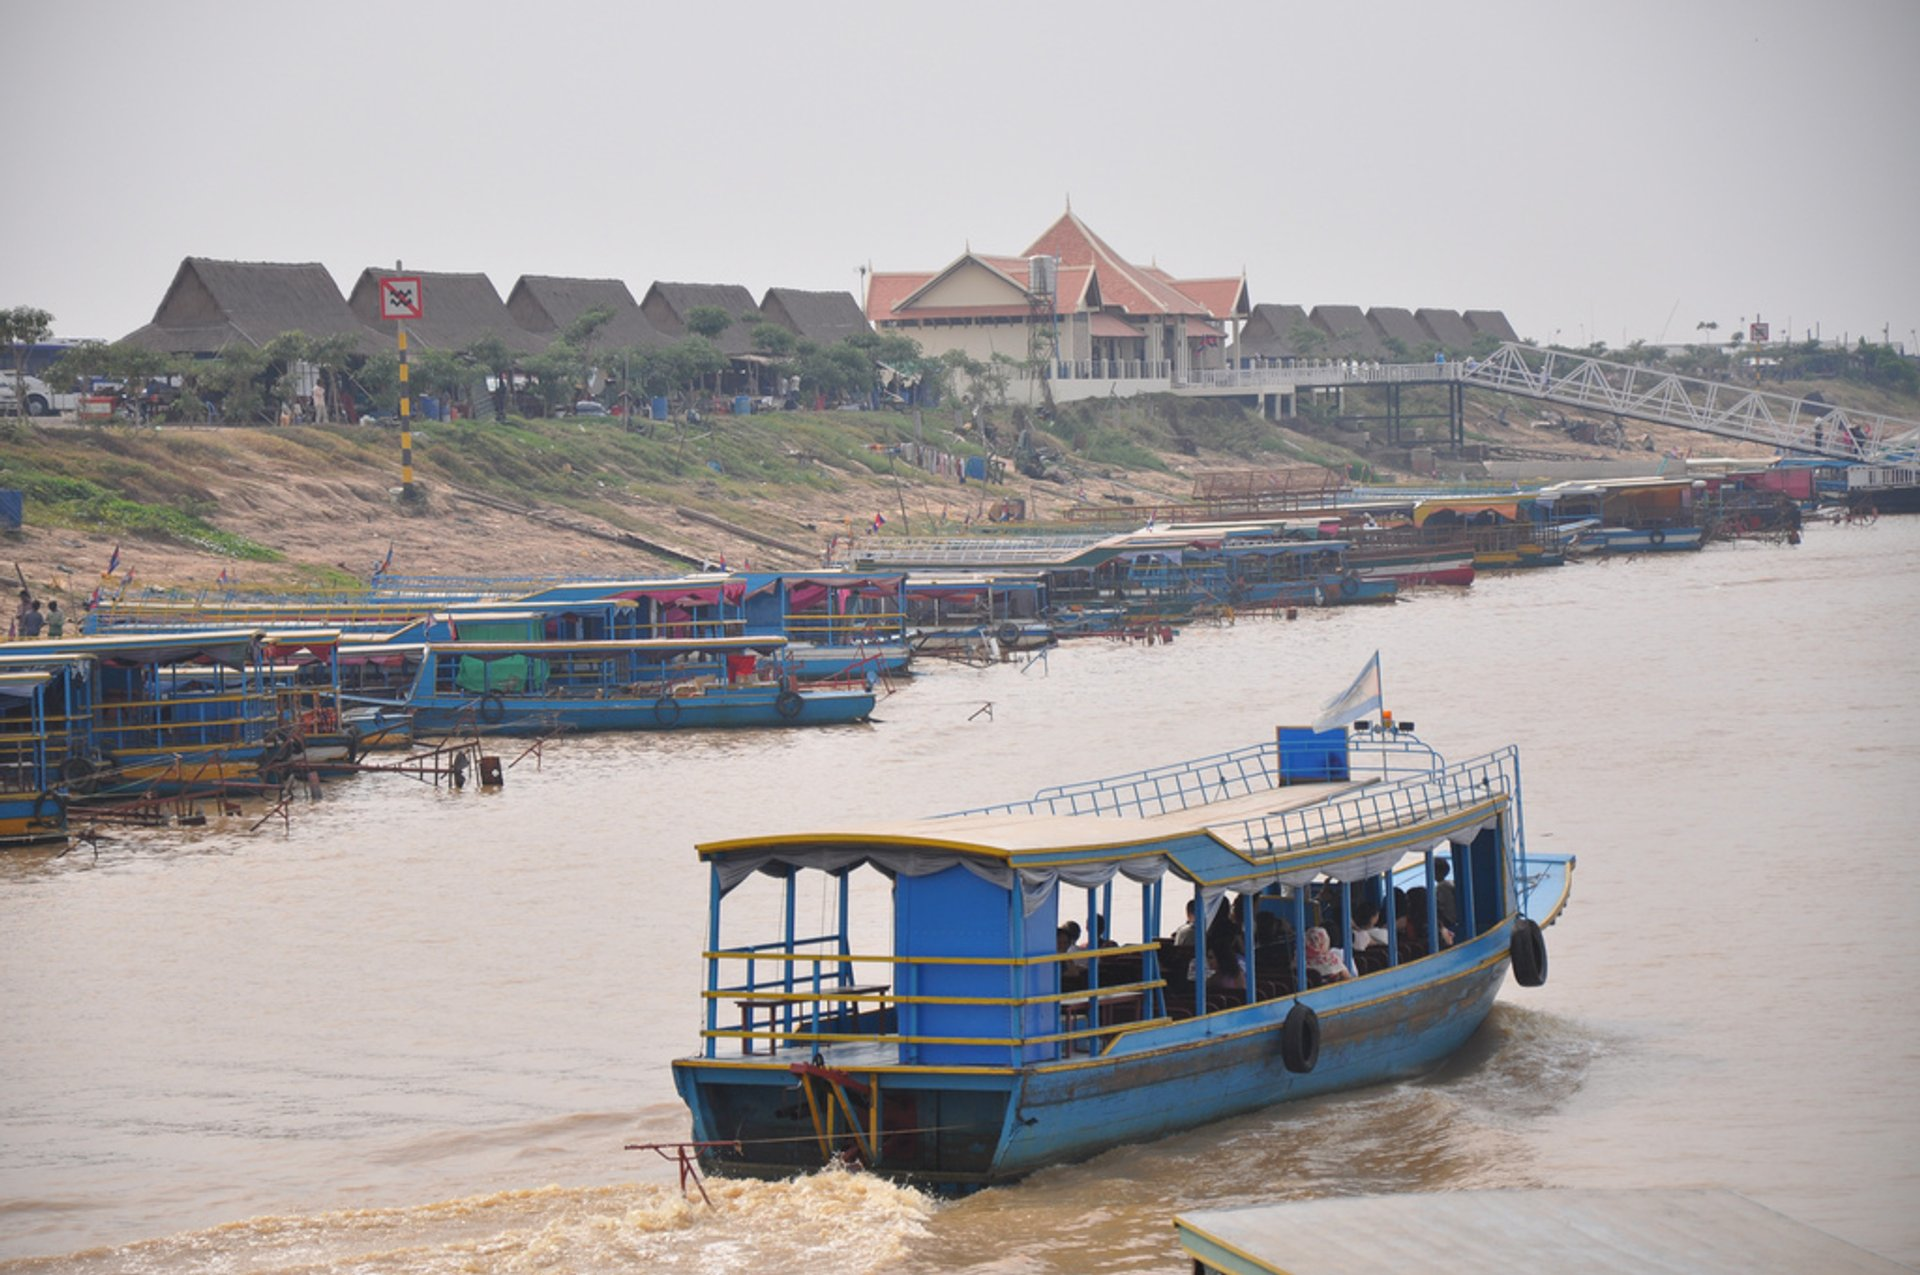 Tonlé Sap Floating Village 2020